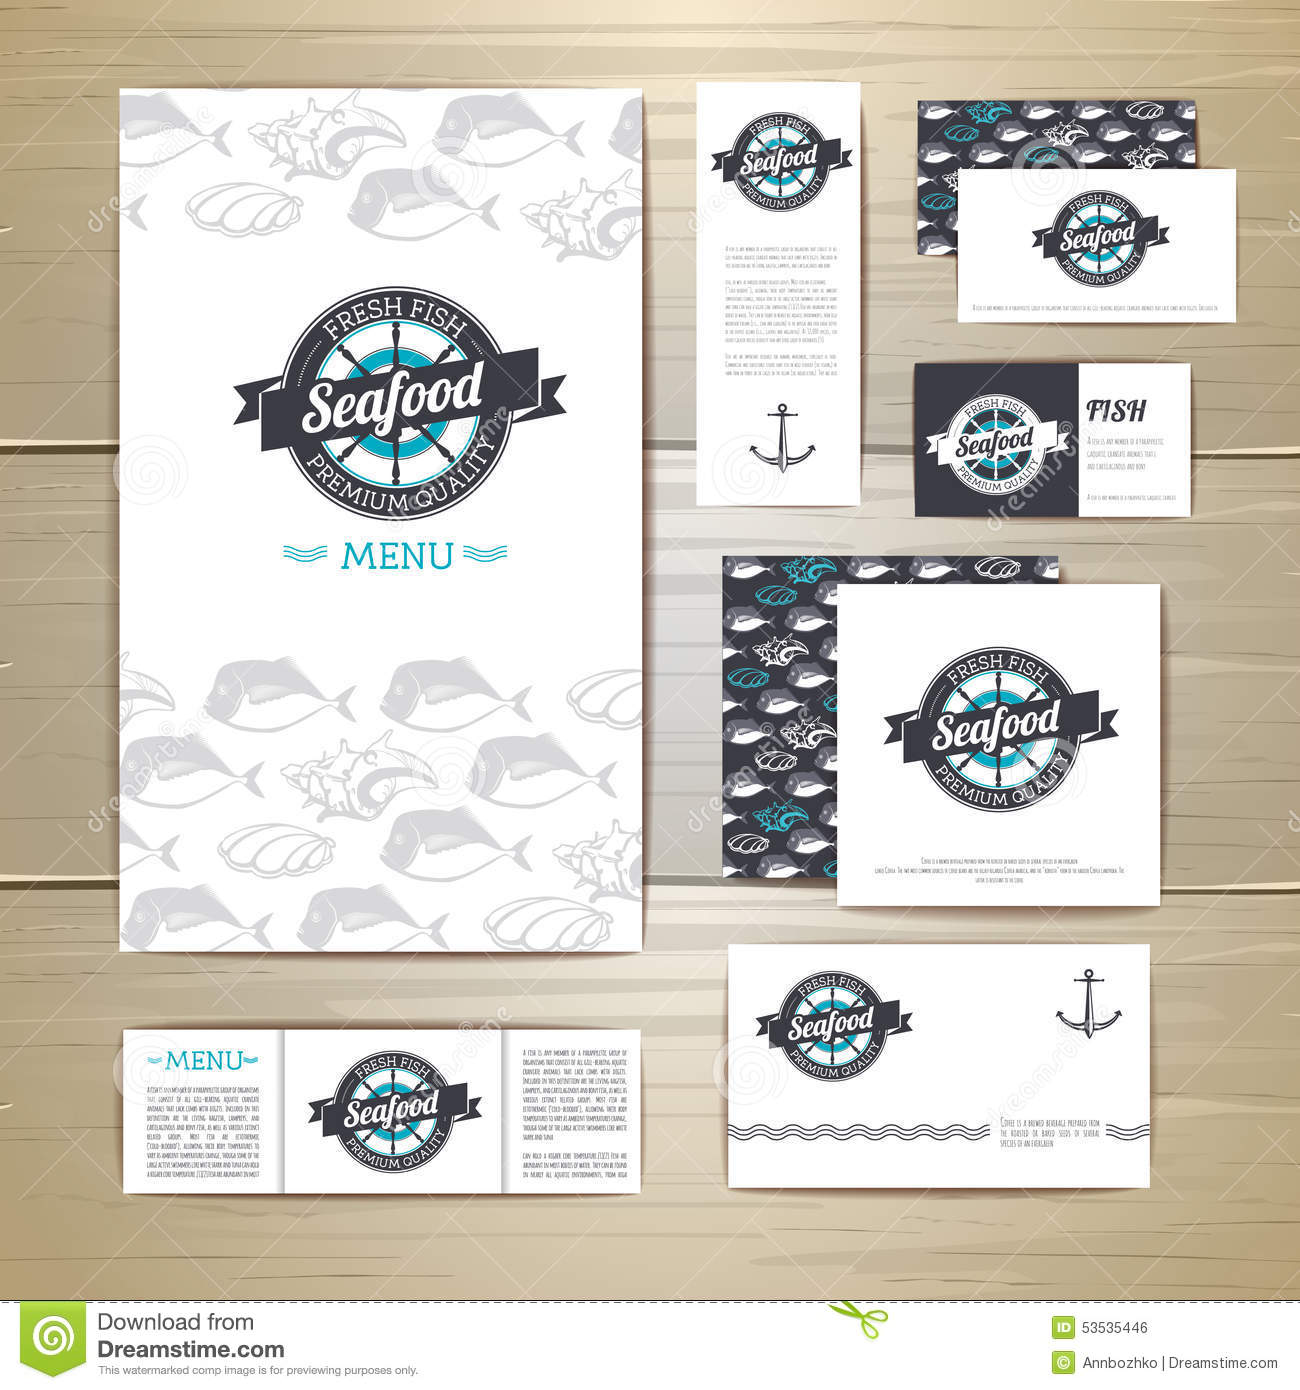 Seafood Restaurant Design Concept : Fried fish restaurant menu concept design corporate